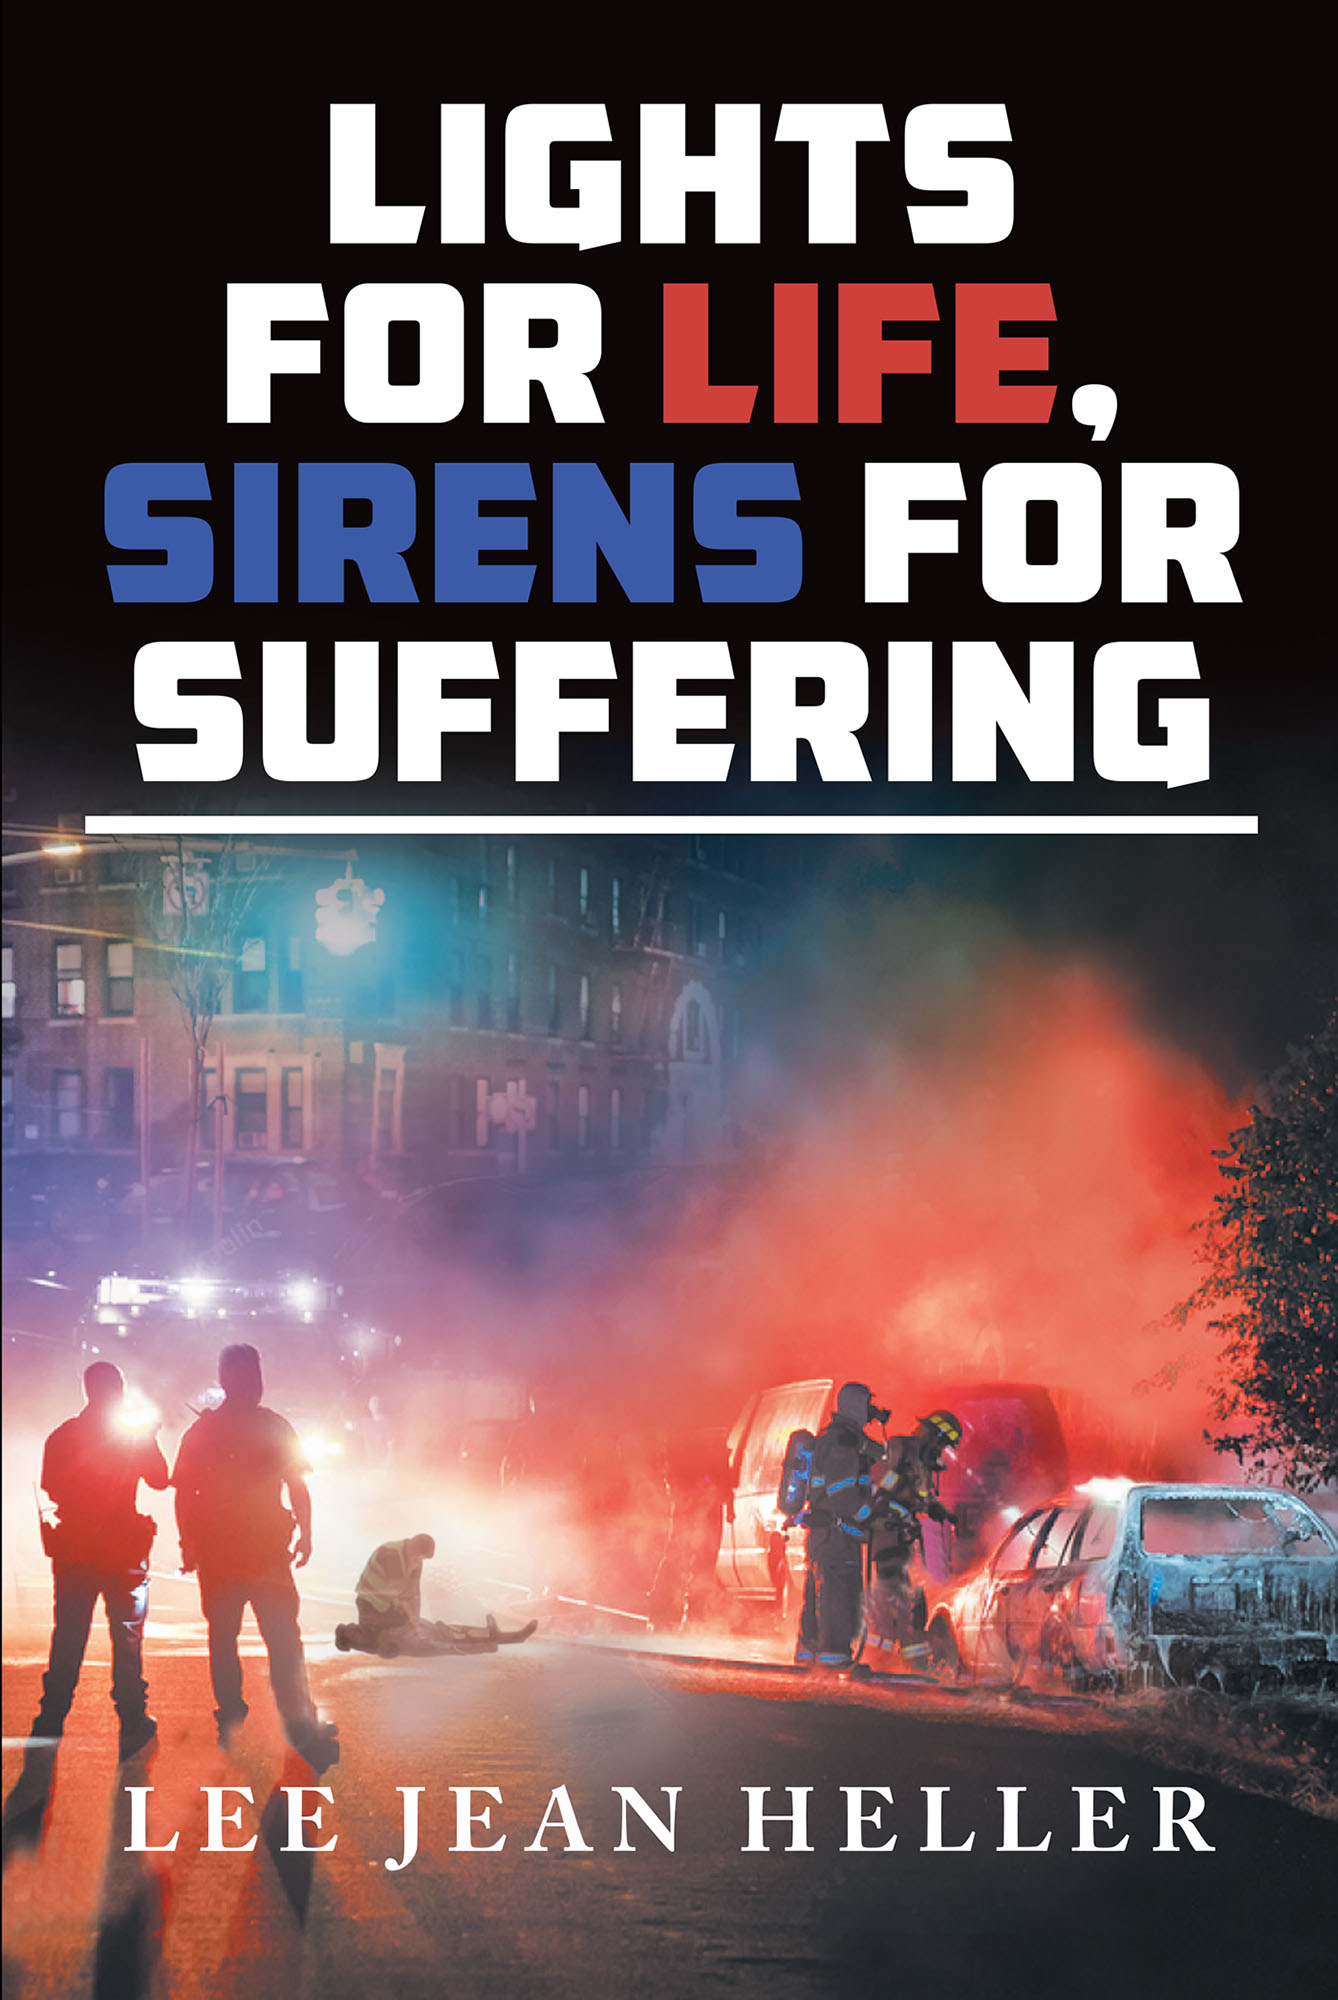 Lee Jean Heller S New Book Quot Lights For Life Sirens For